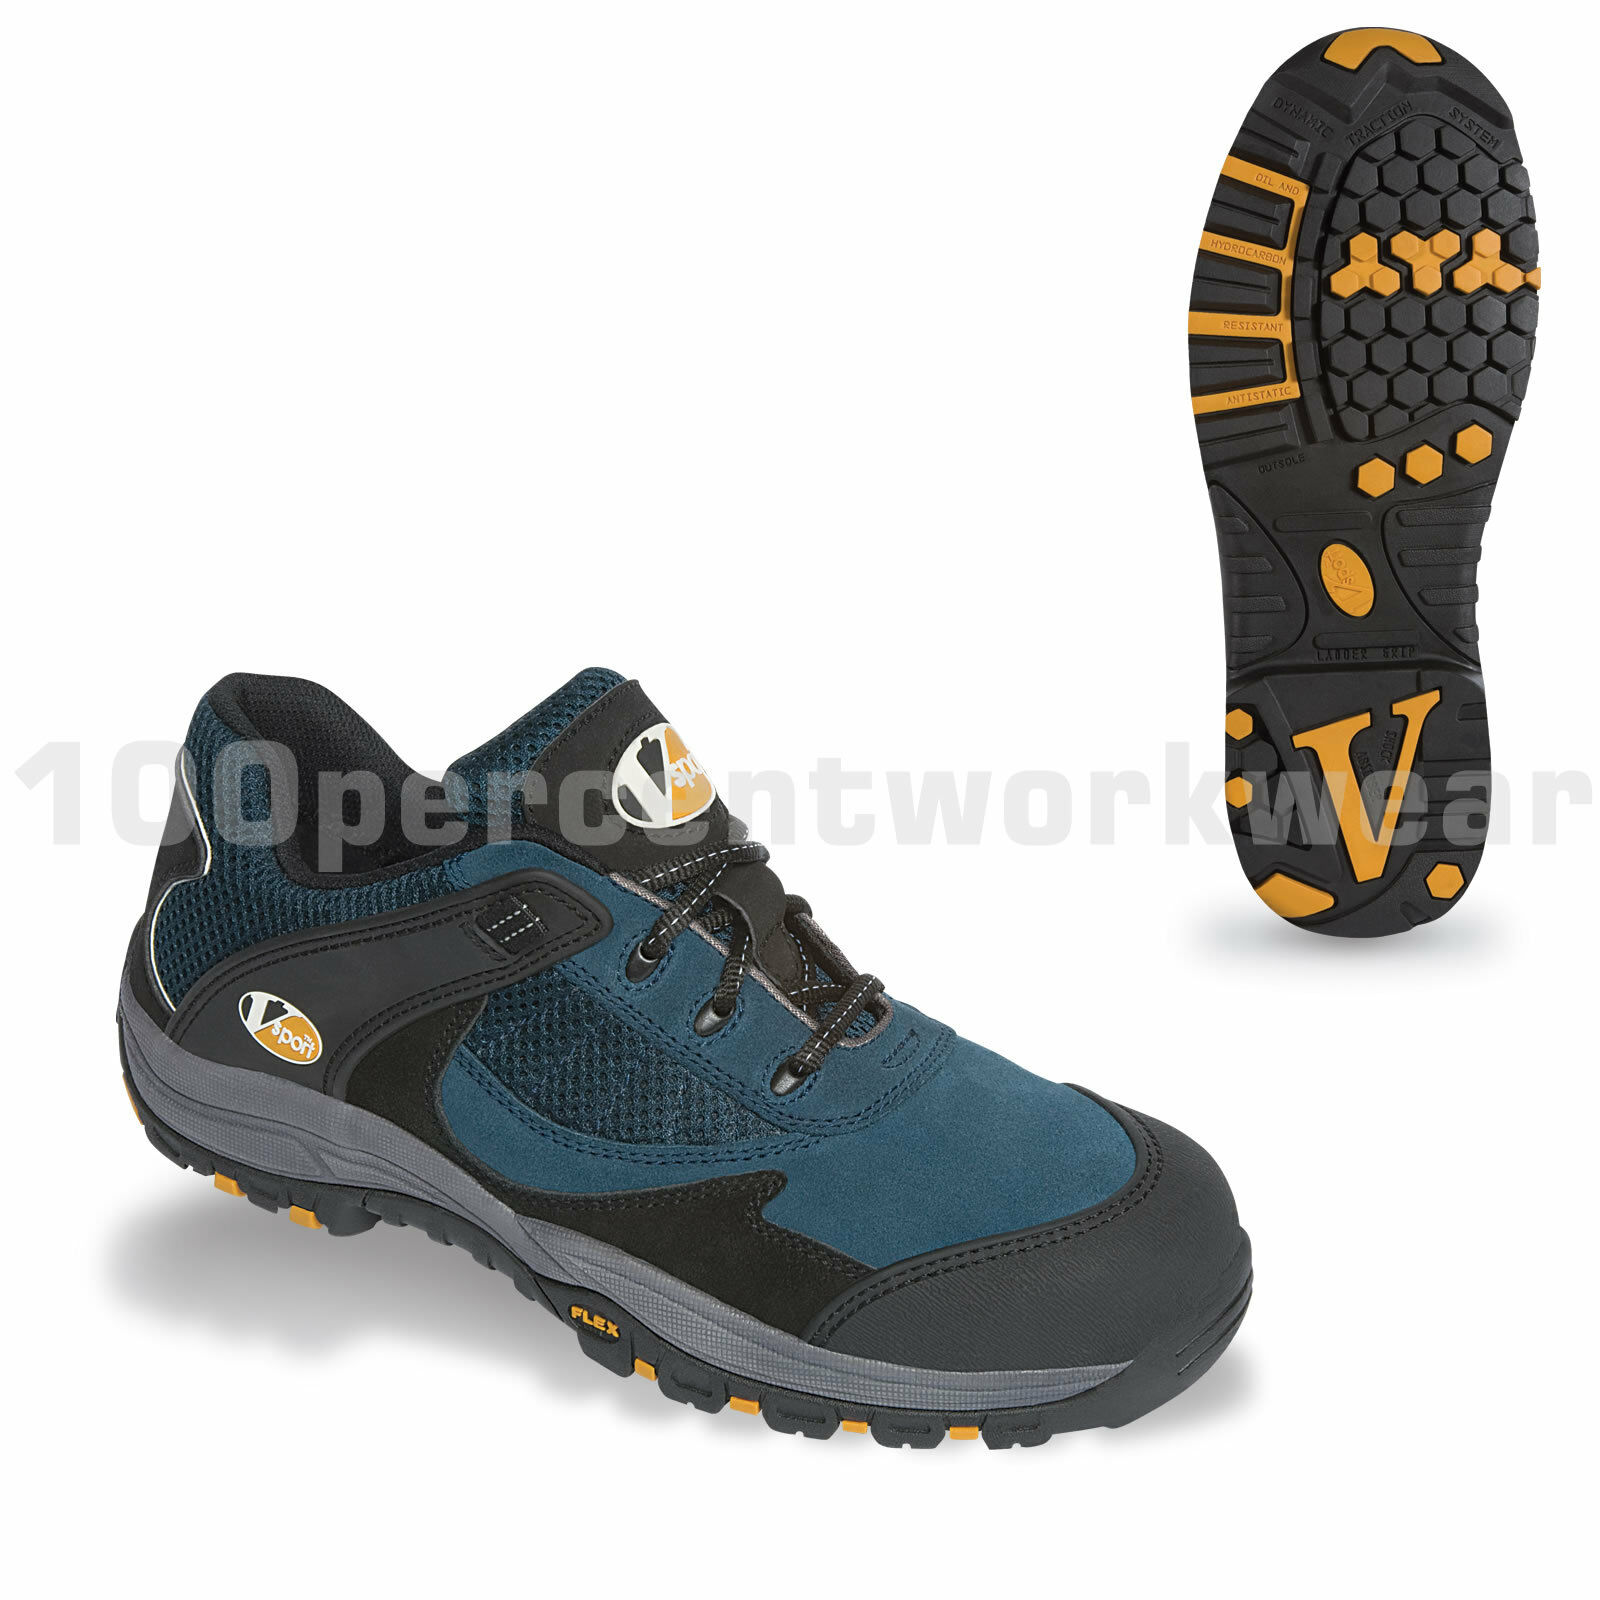 V12 Vtech Safety VS400 PITSTOP Work Trainers Schuhes Blau Free Suede Toe Cap Metal Free Blau f88a51